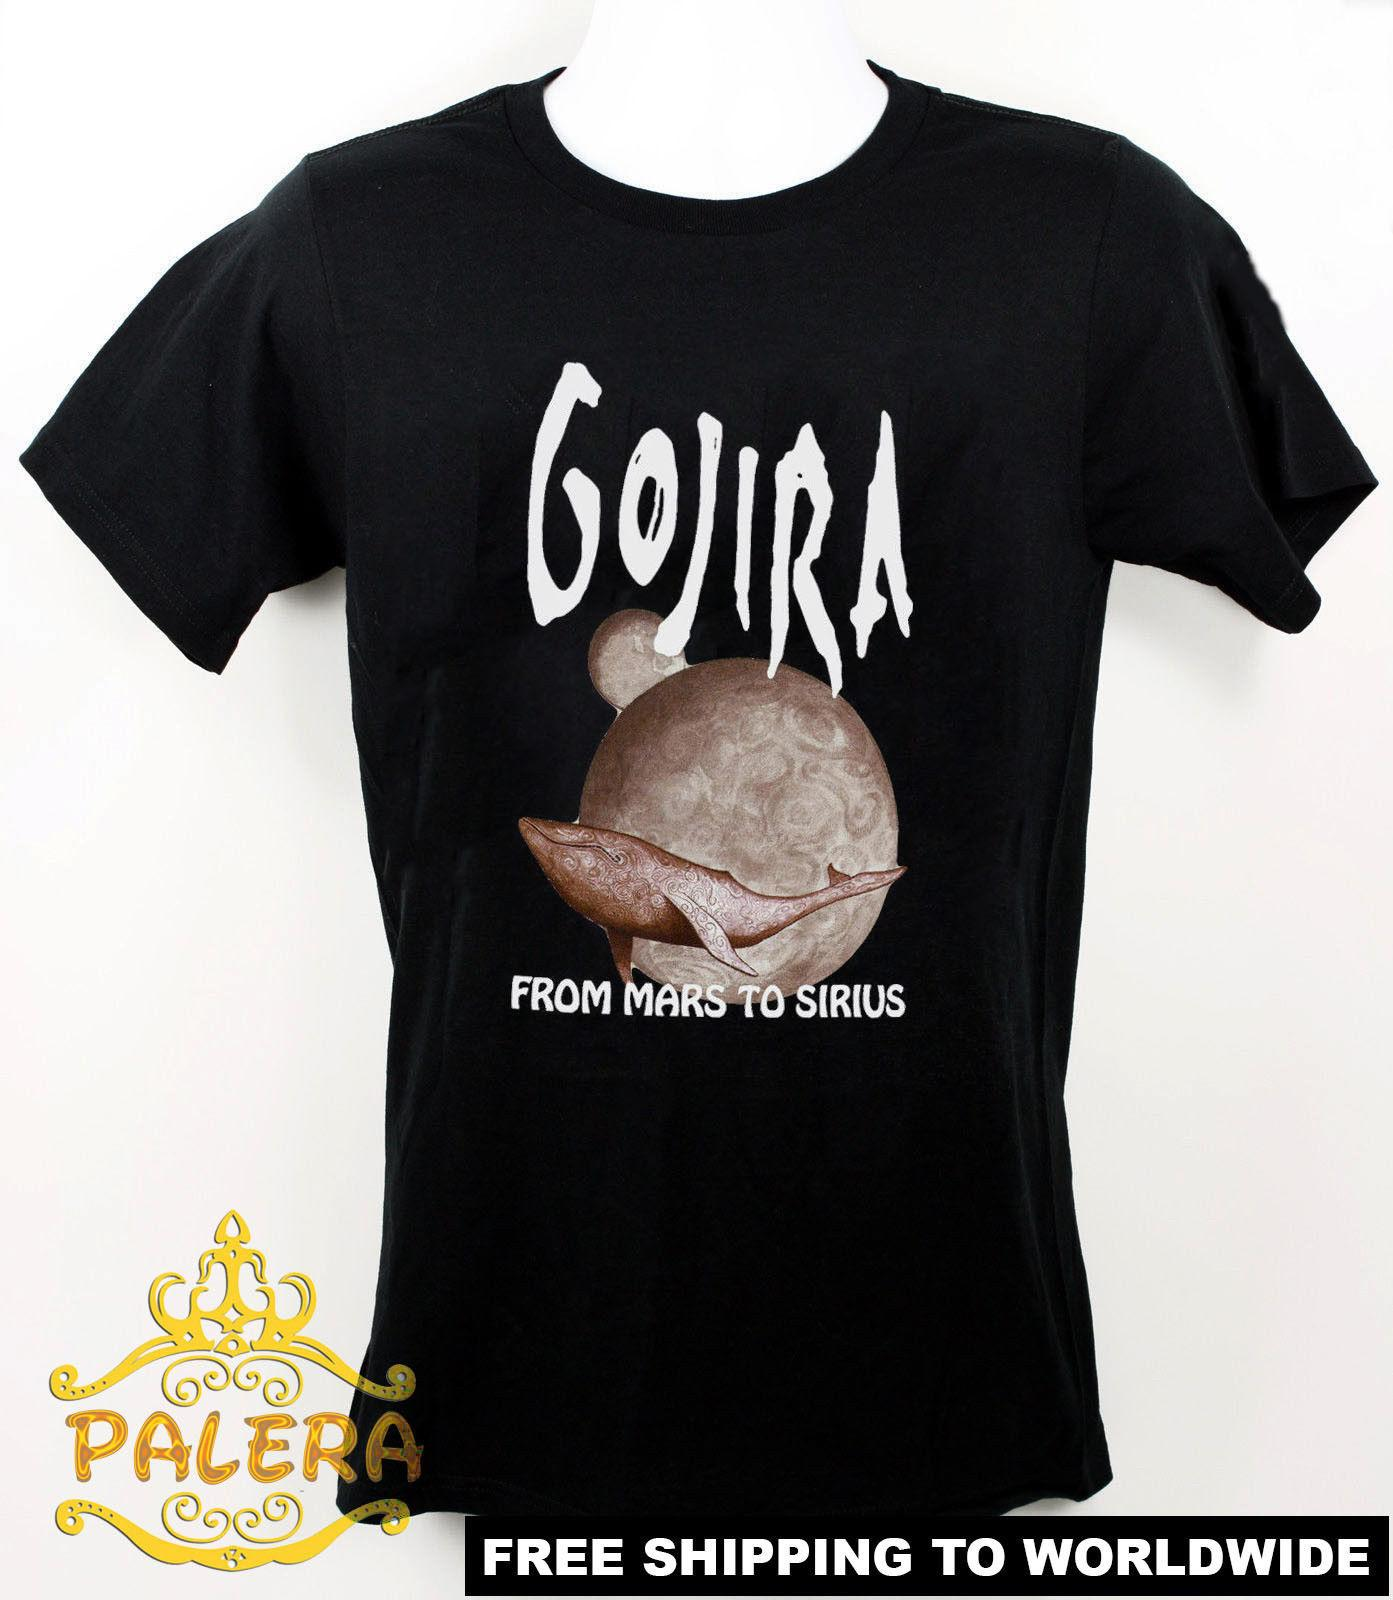 cd47588e8ad1 Official Gojira Men Black T Shirt Metal Band Fan Tee Shirt From Mars S XXL Buy  Tee Top T Shirt Sites From Happytshirt53, $11.58| DHgate.Com